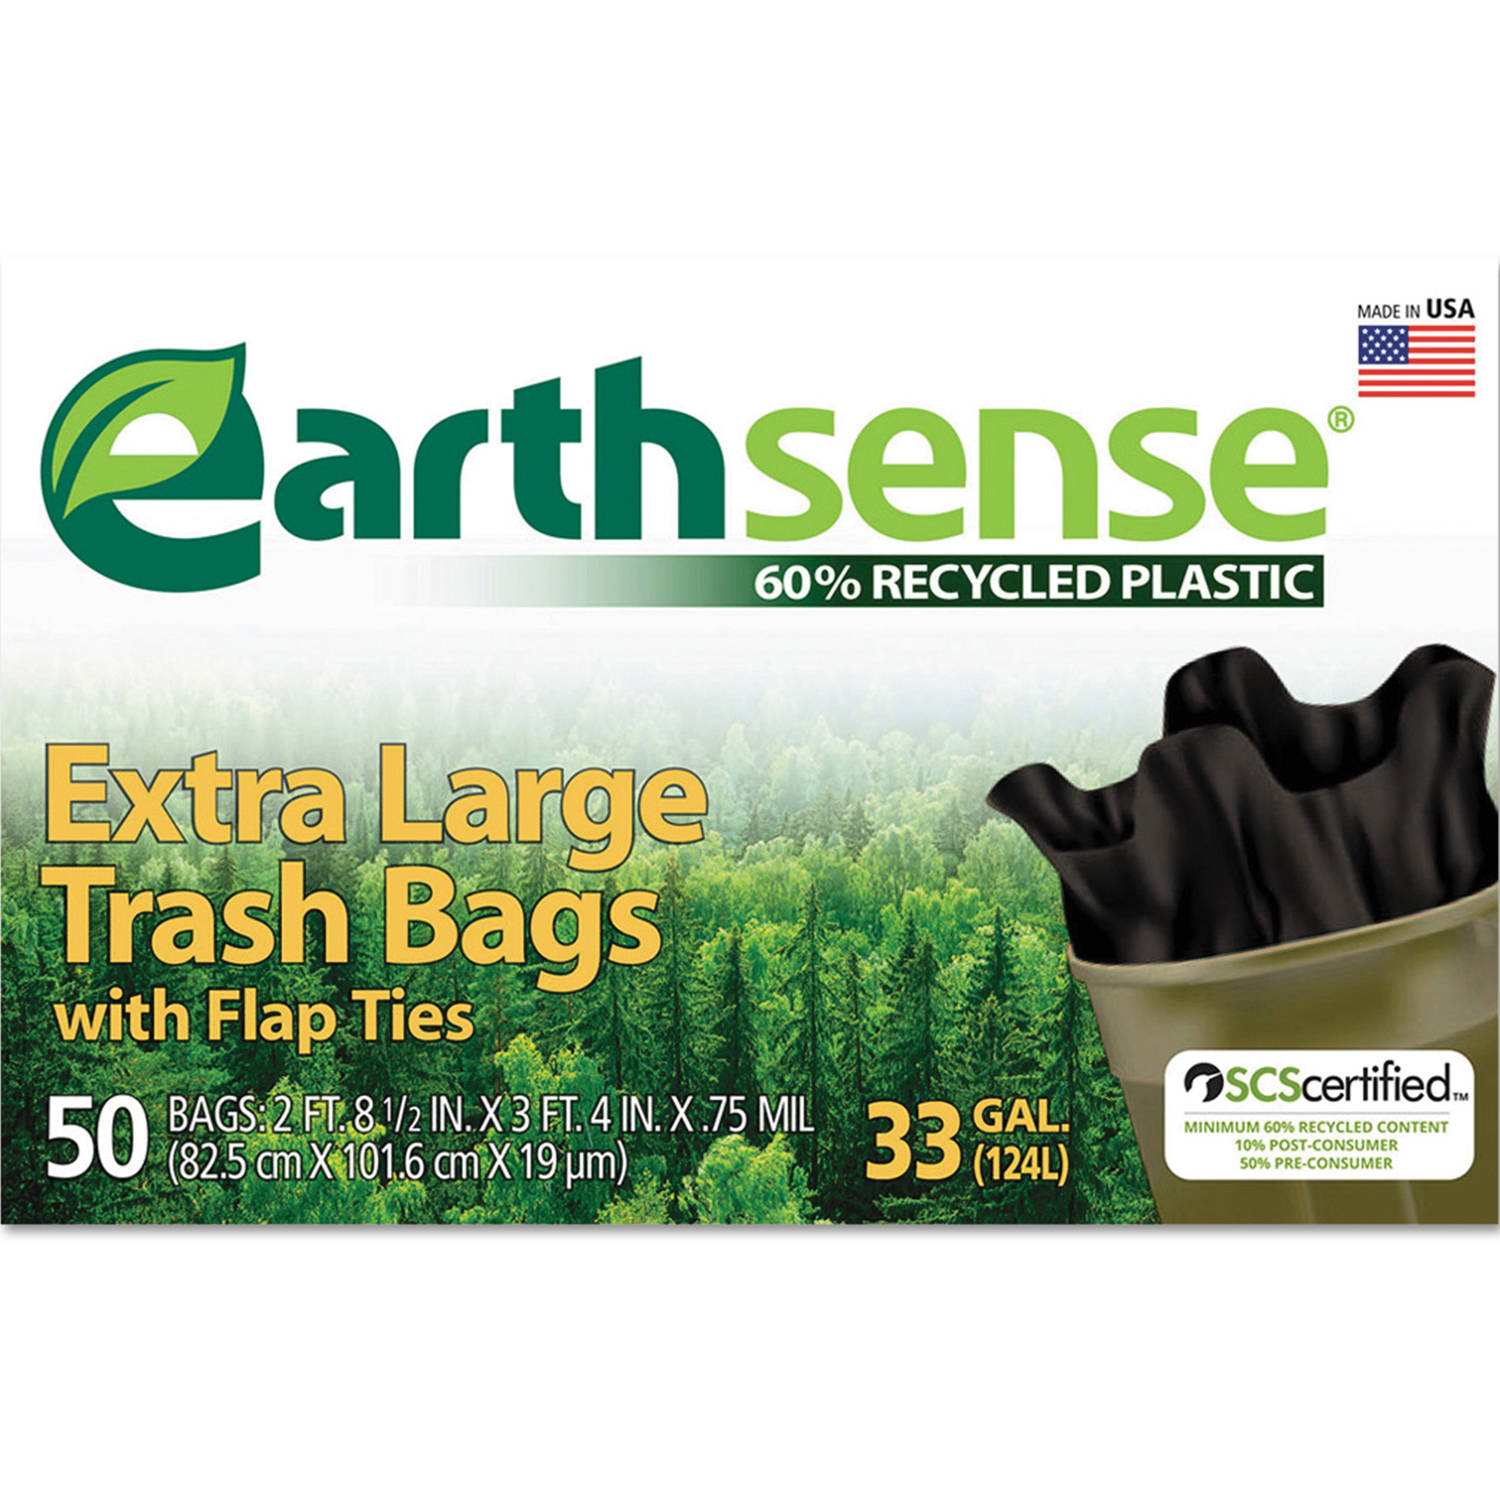 Earthsense Recycled Black Can Liners, 33 gal, 50 ct